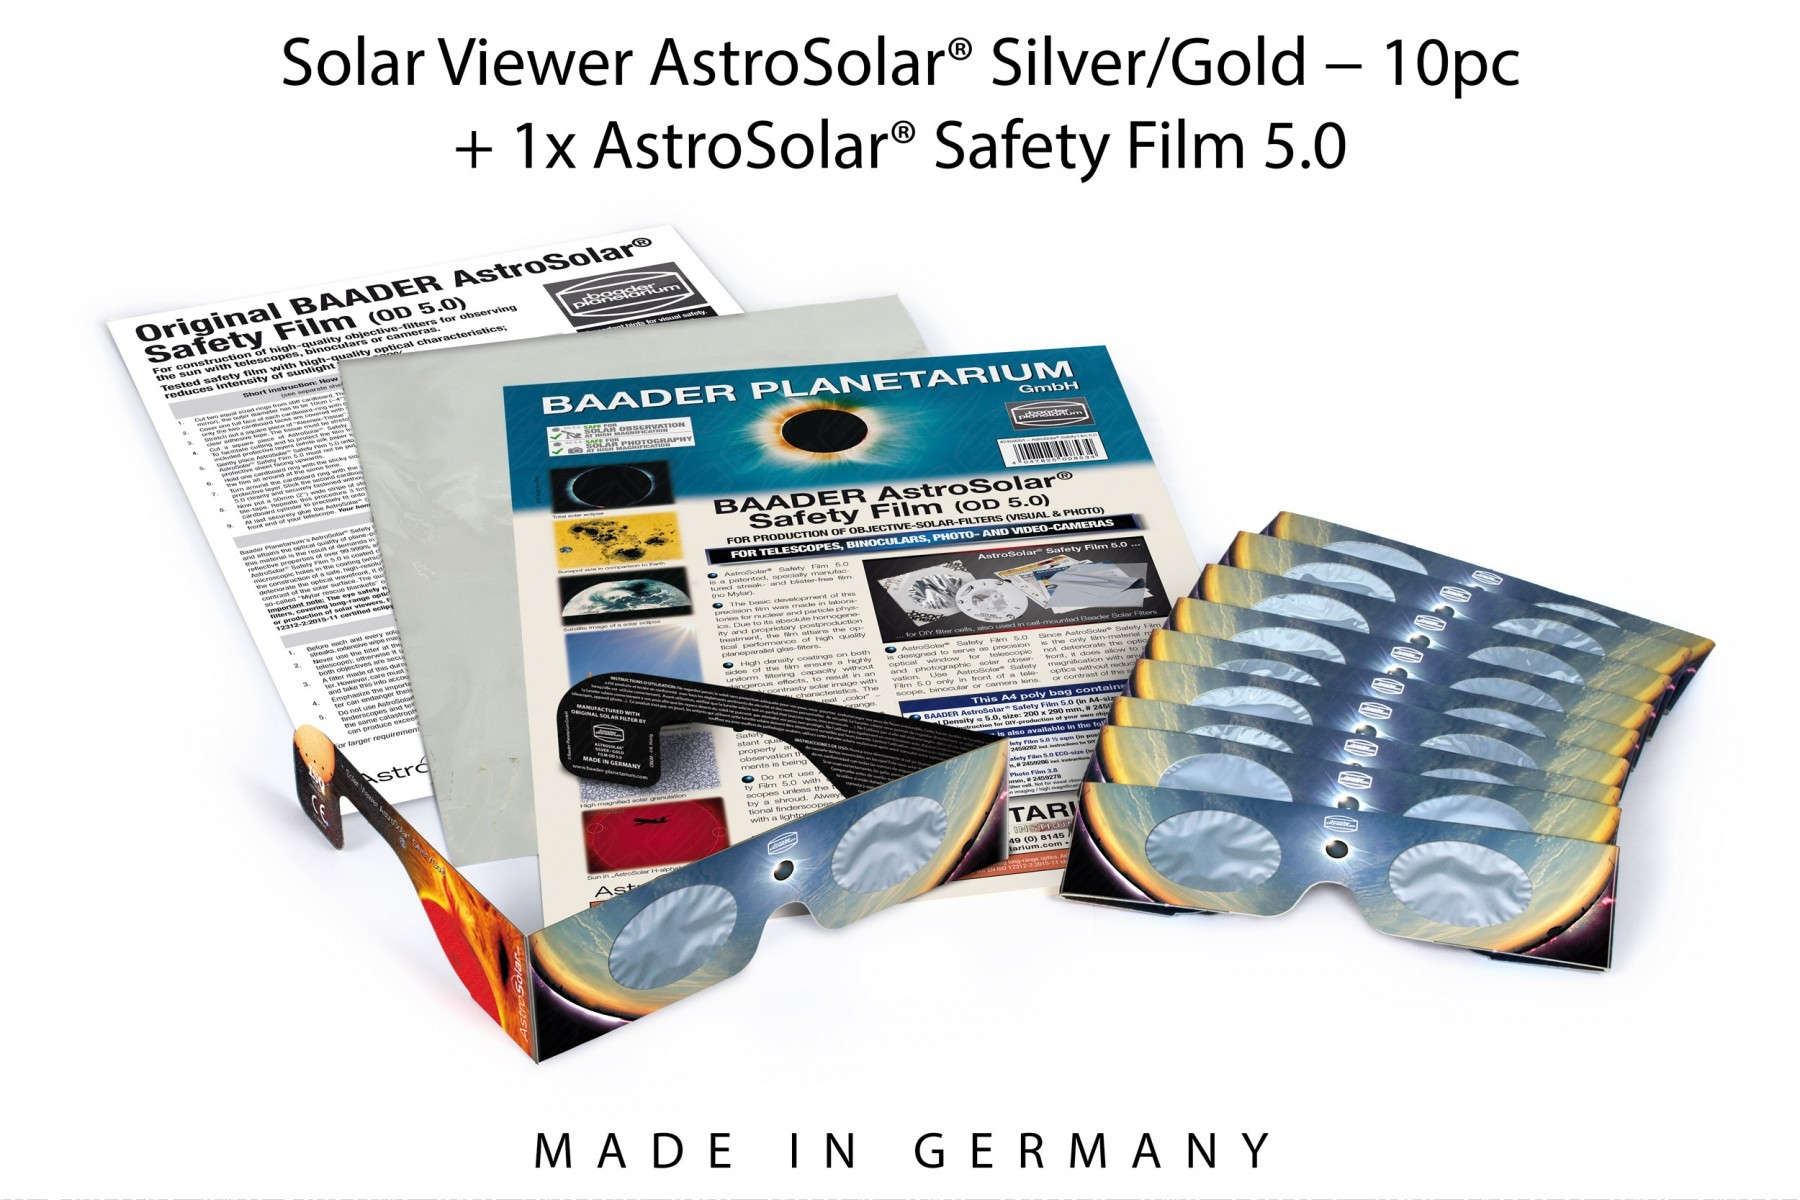 Solar Viewer AstroSolar® Set with 10 Solar Viewers and 1 sheet of AstroSolar® Safety Film A4